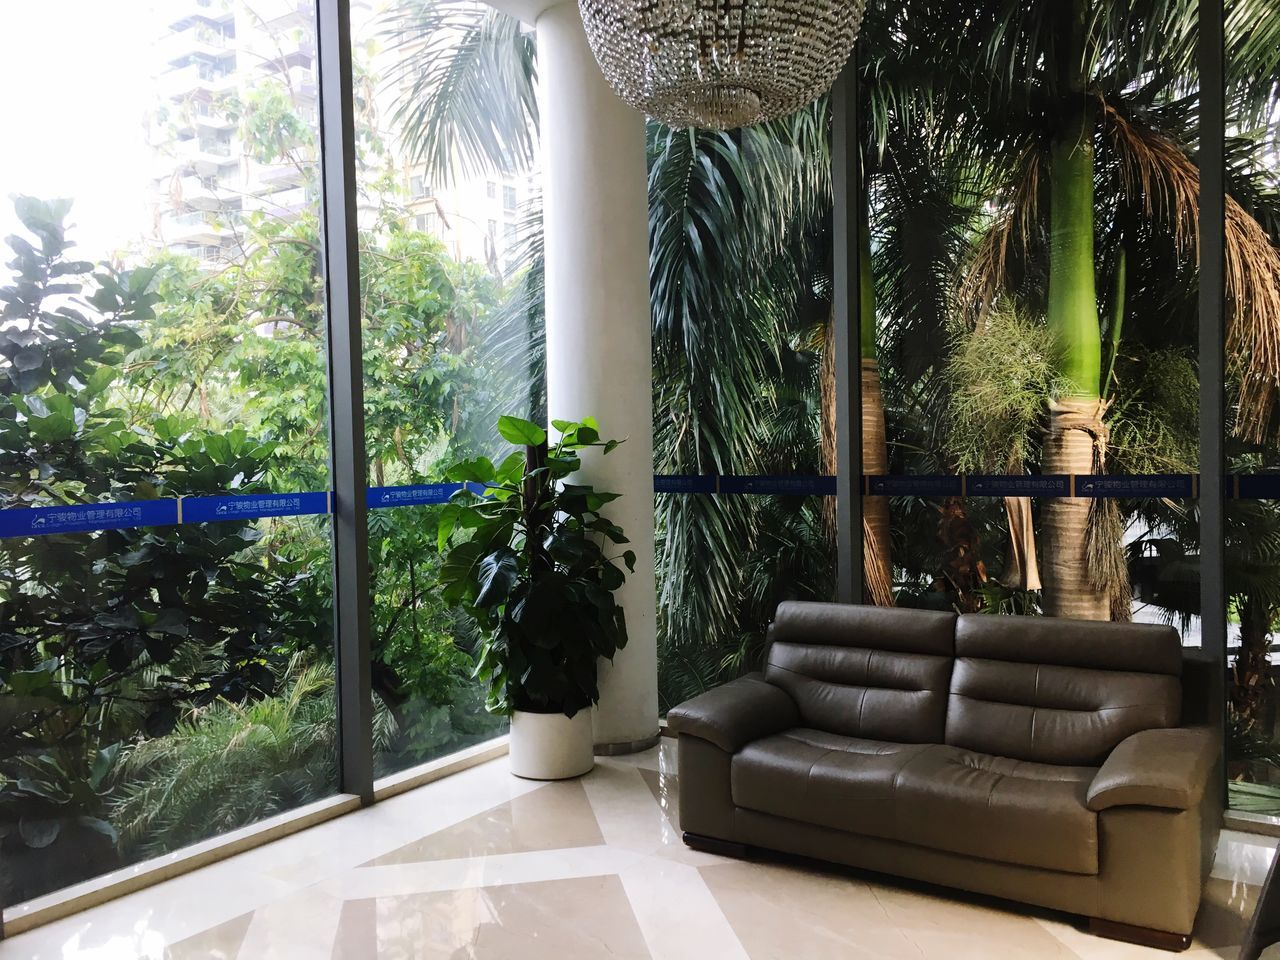 Home Interior Luxury Palm Tree Tree Armchair Indoors  Sunlight Day Living Room Elégance Window No People Plant Luxury Hotel Growth Home Showcase Interior Modern Nature Architecture